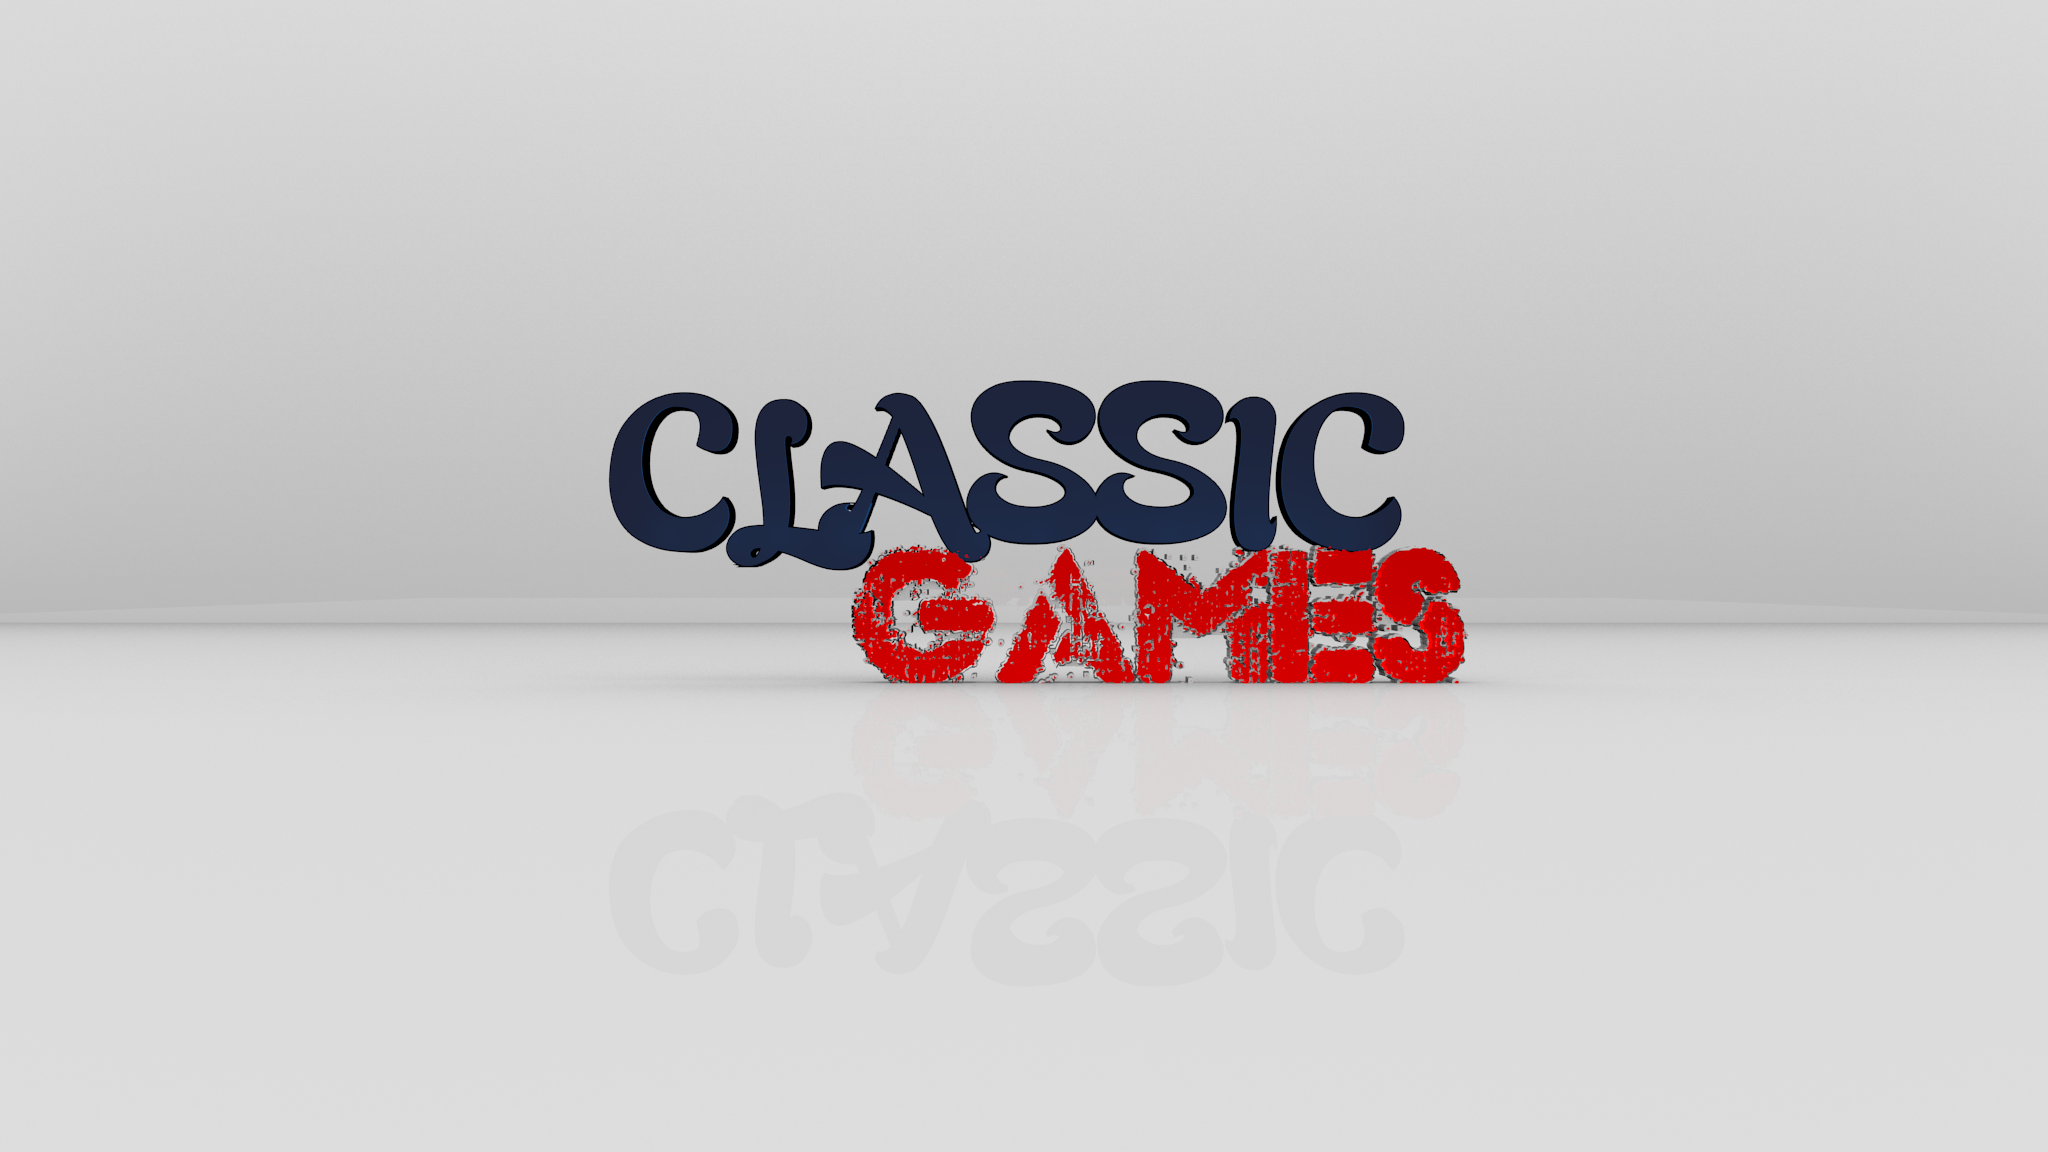 2048x1152 Youtube Channel Art Classic games wallpaper by 2048x1152